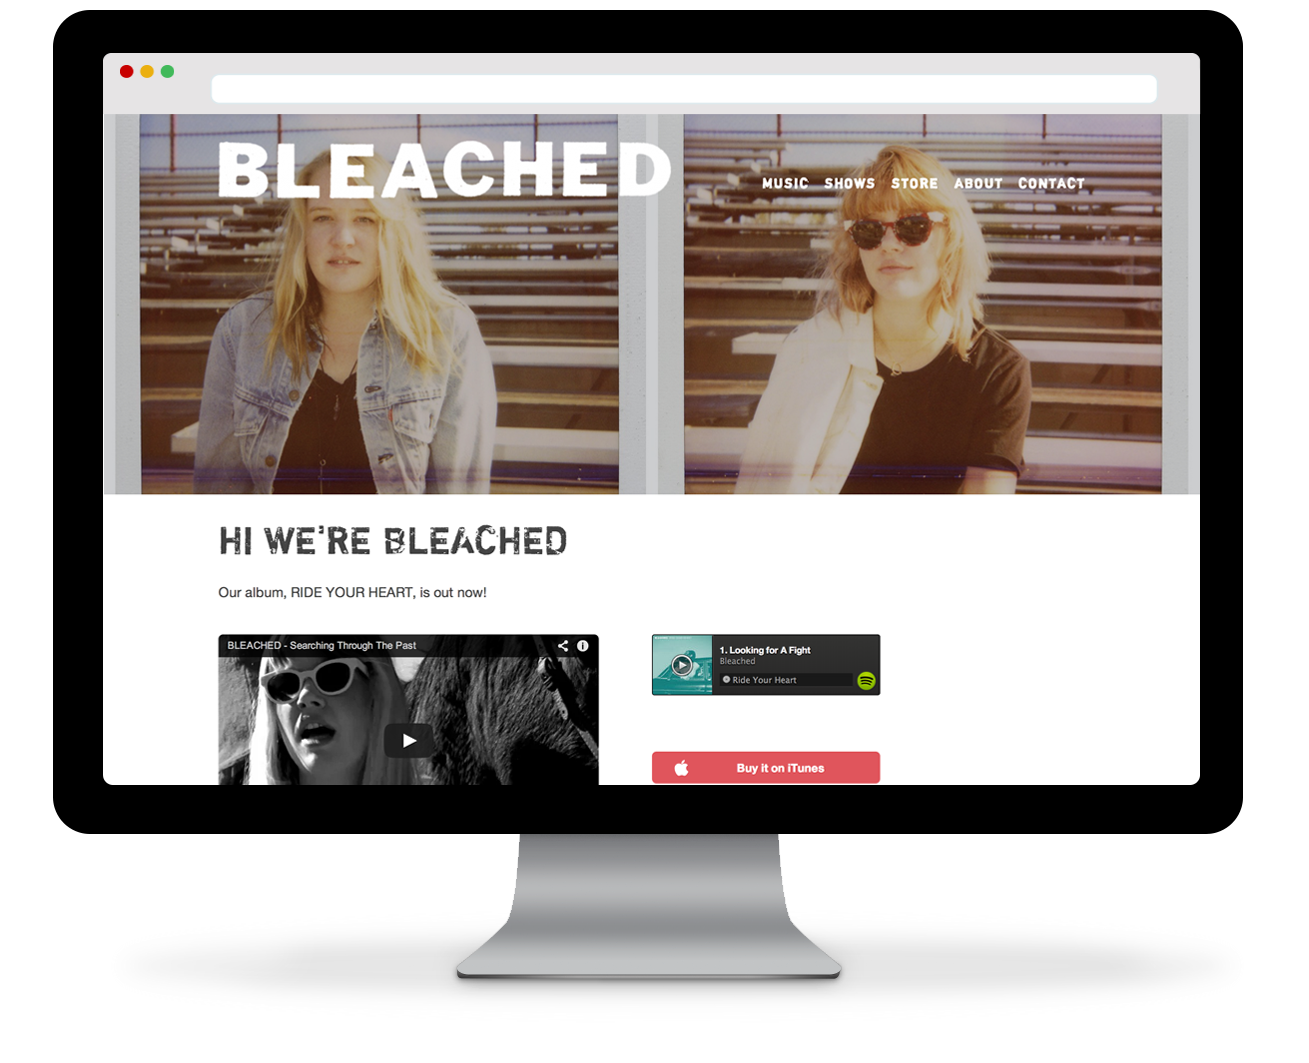 bleached_home.png